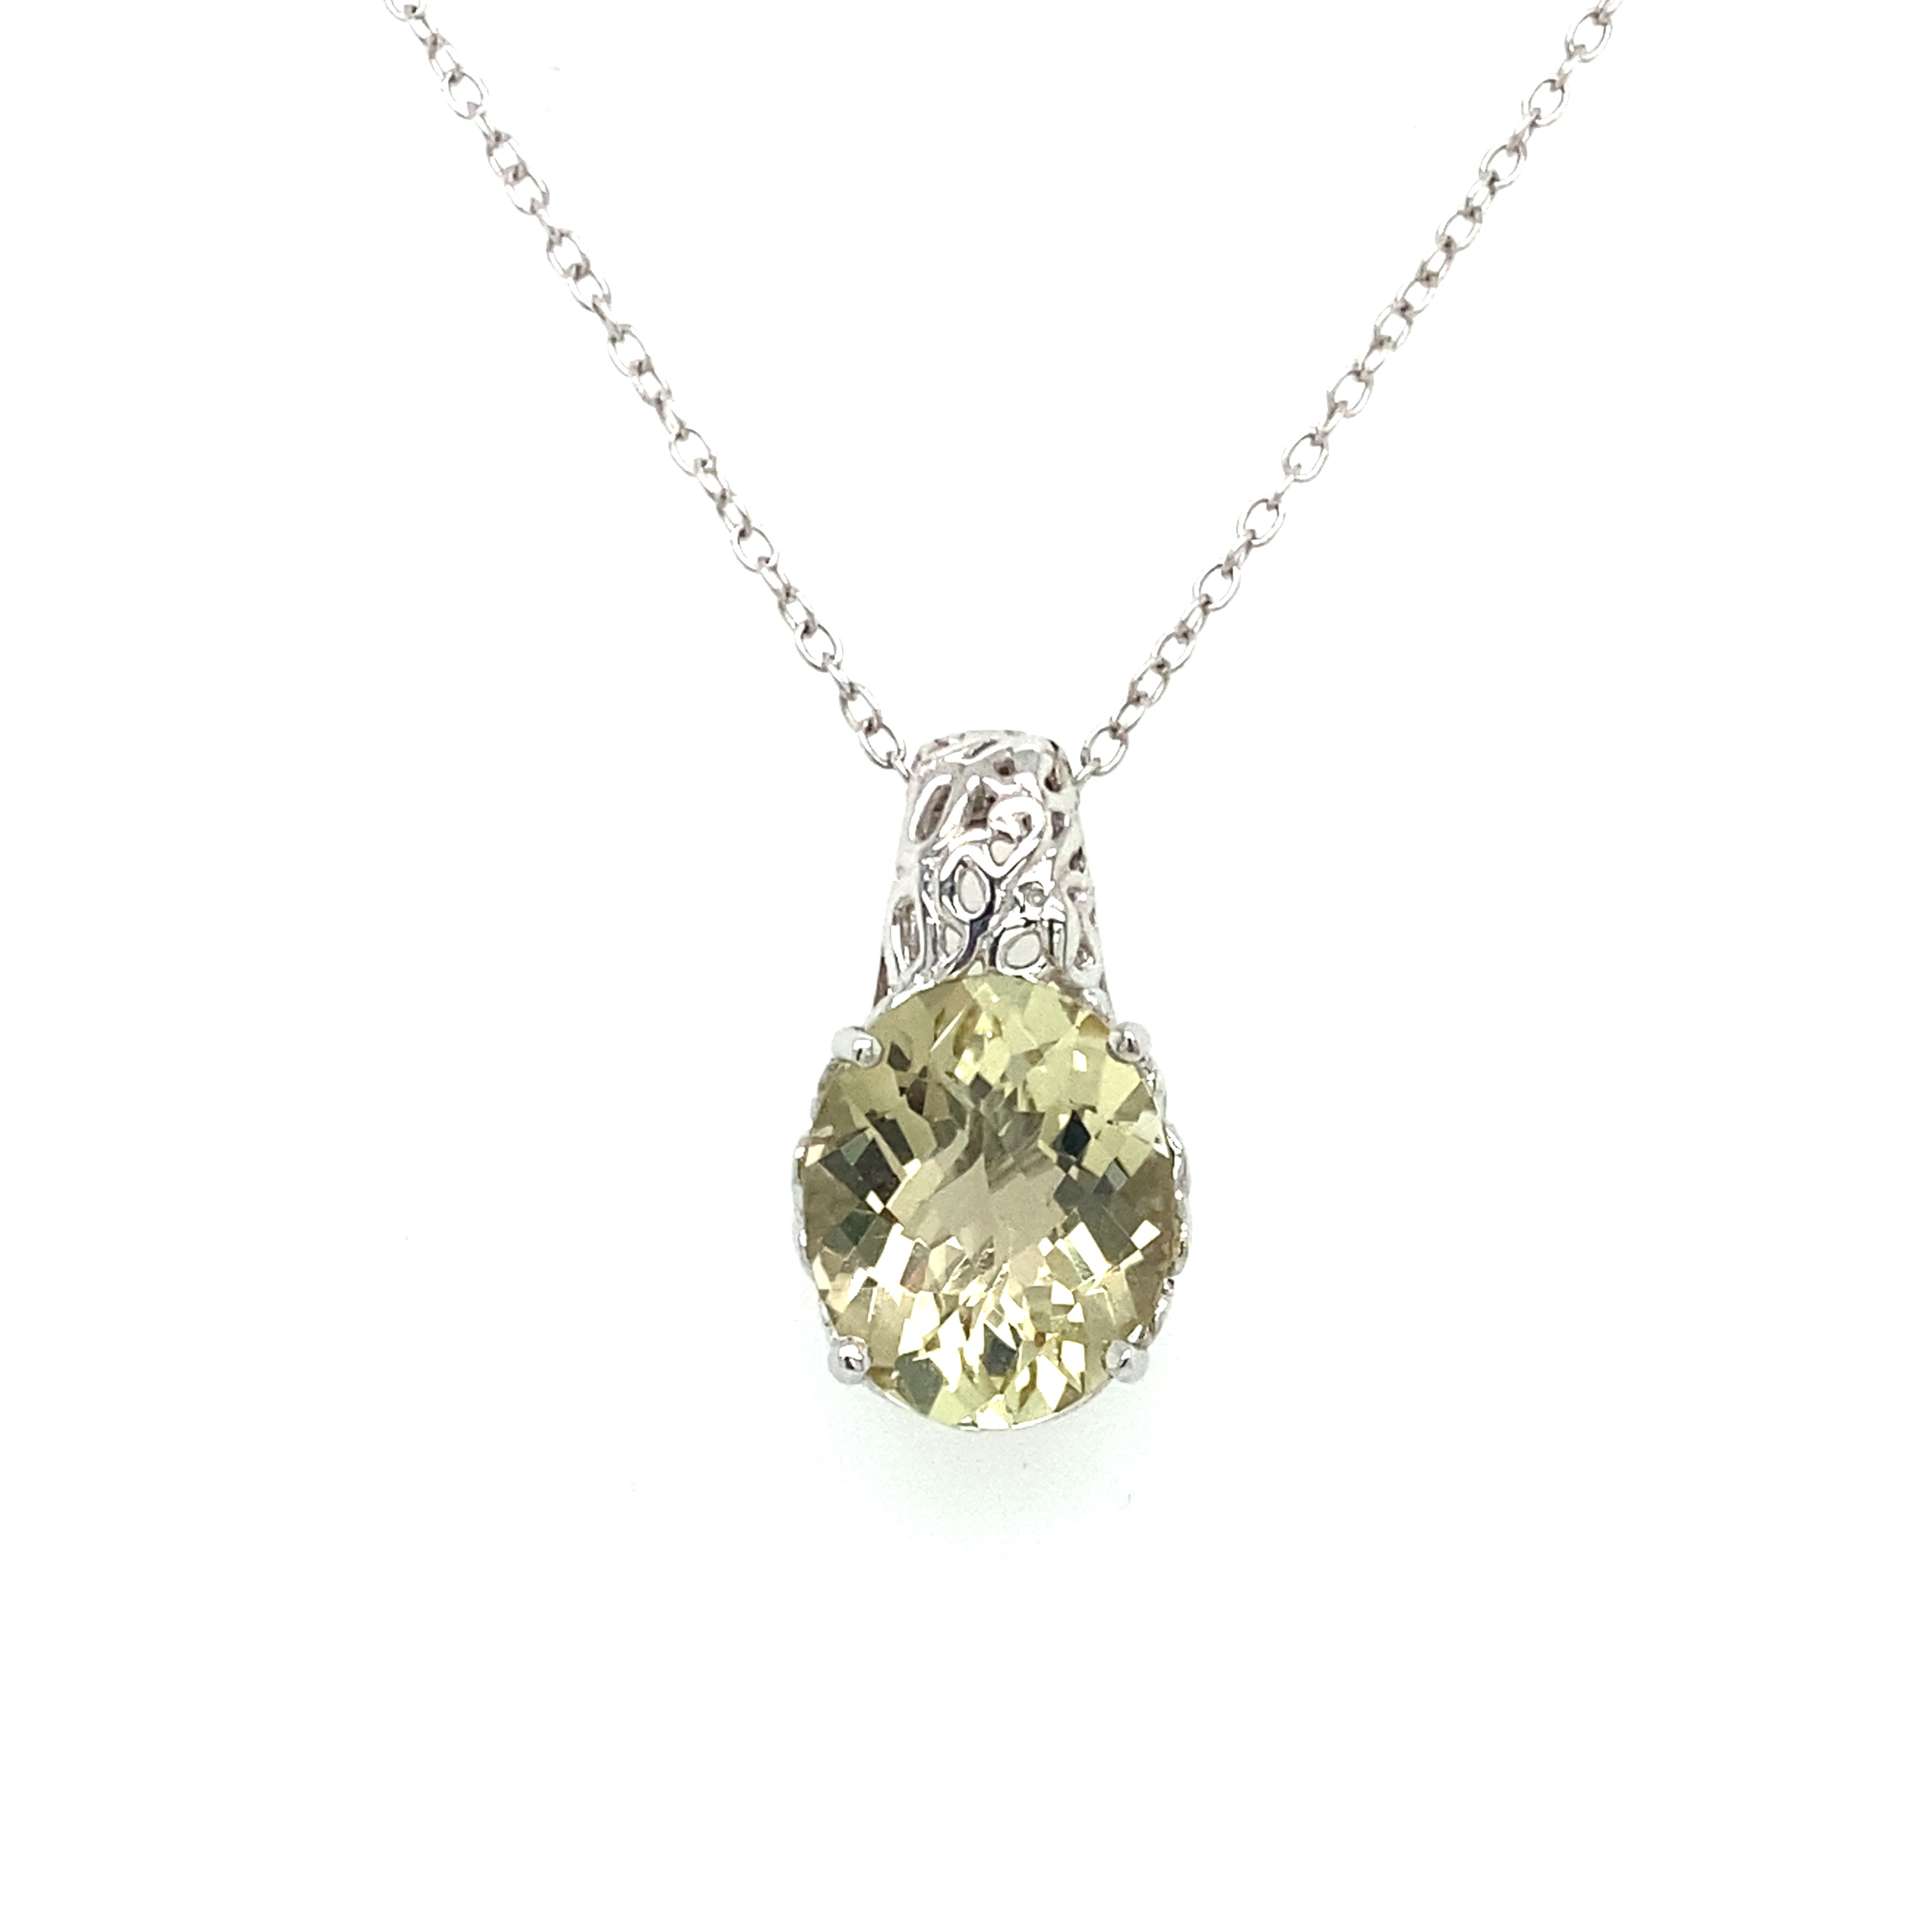 Sterling Silver and Yellow-Green Quartz Pendant